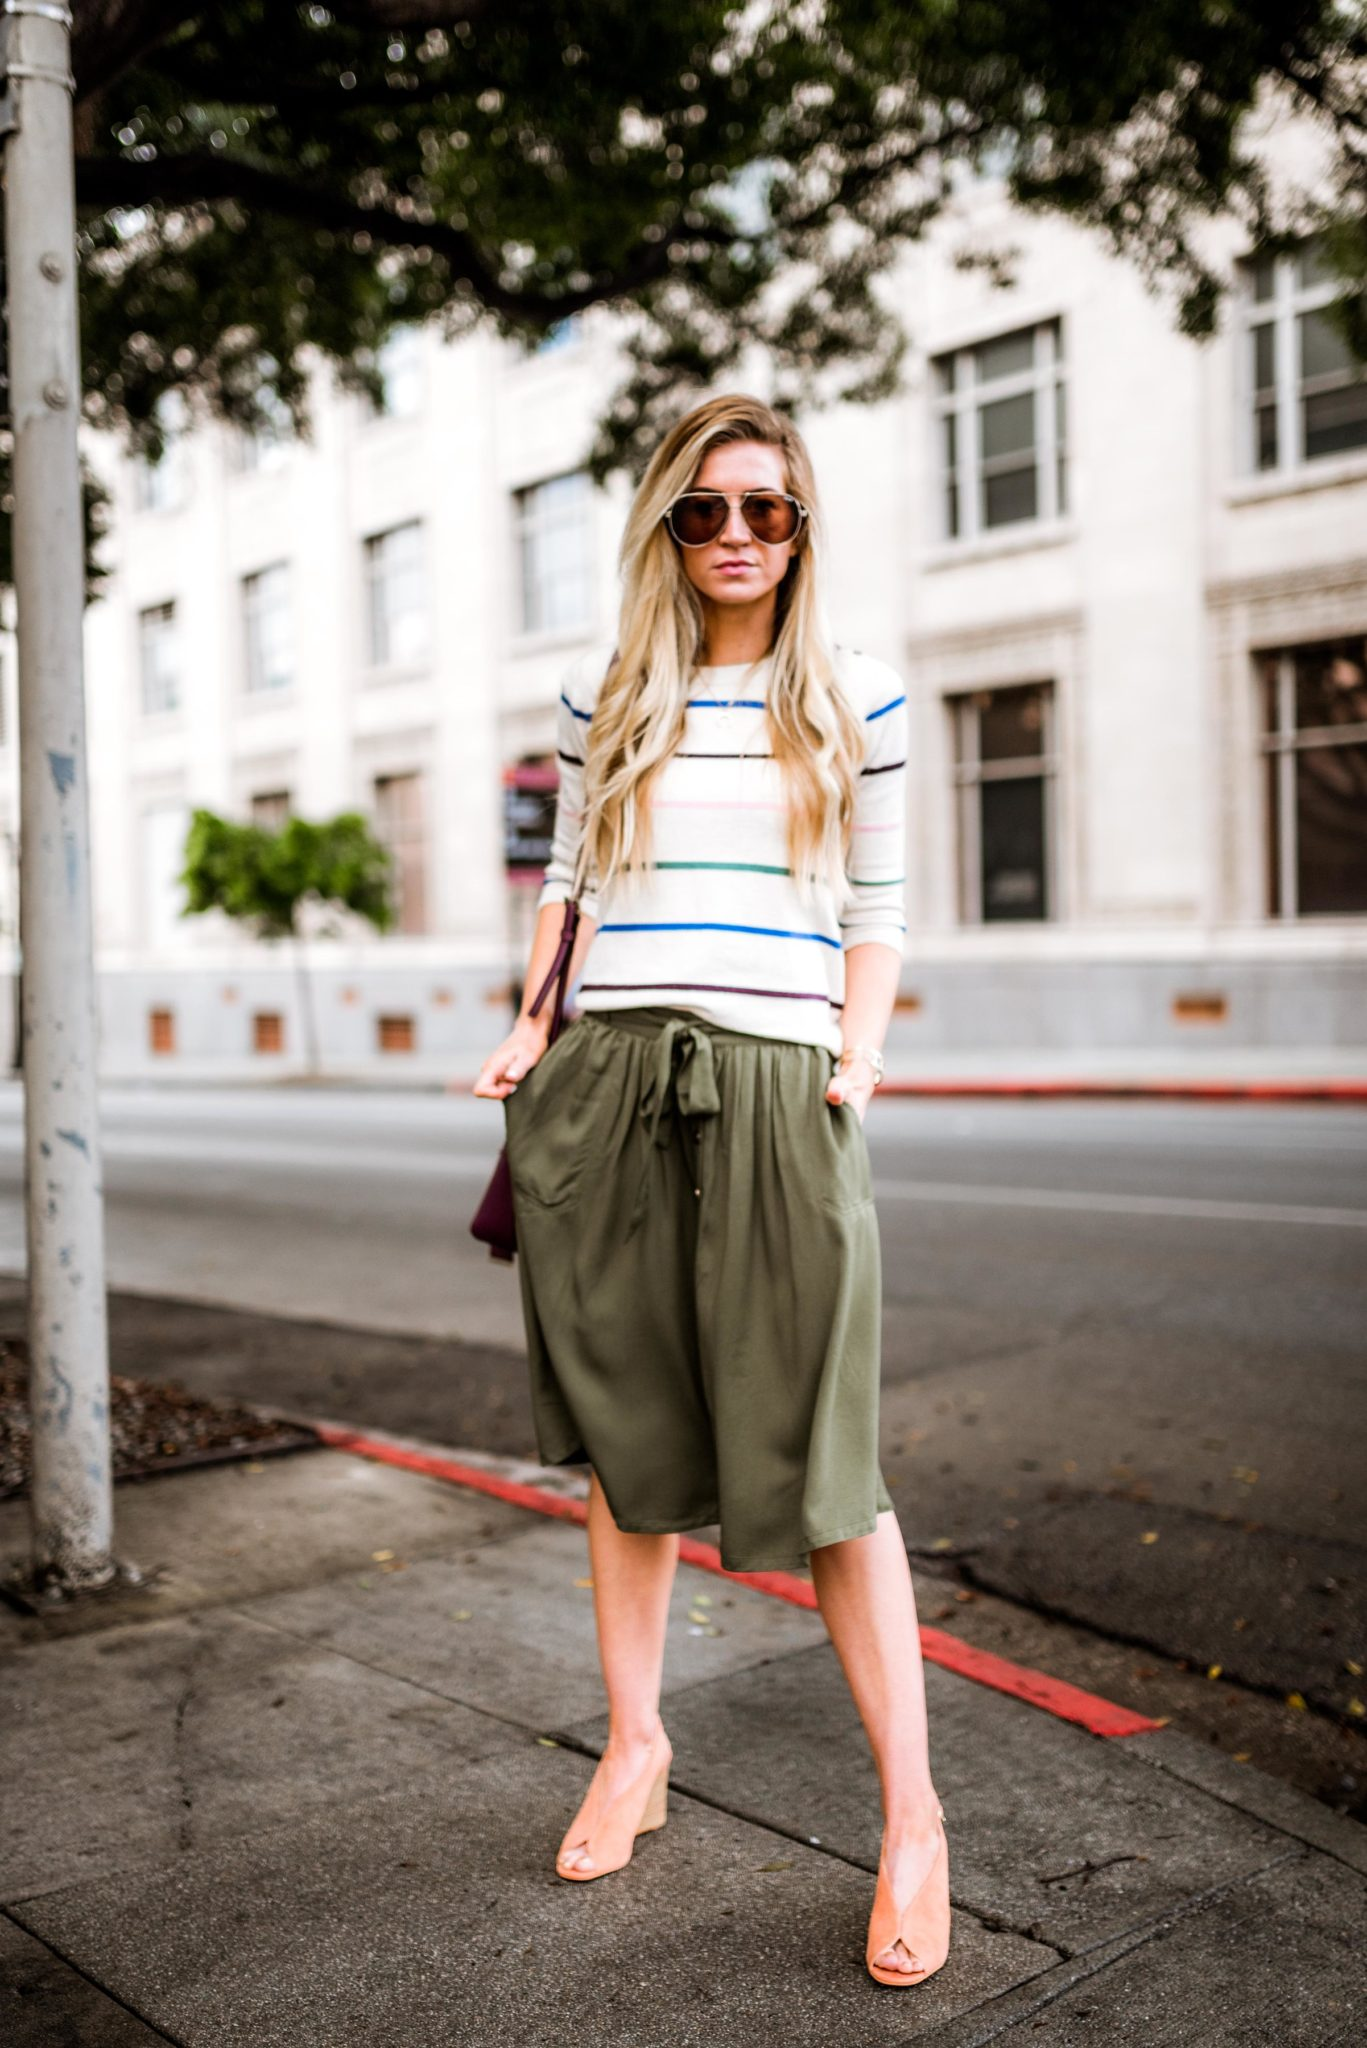 Striped sweater + olive green skirt - Leanne Barlow